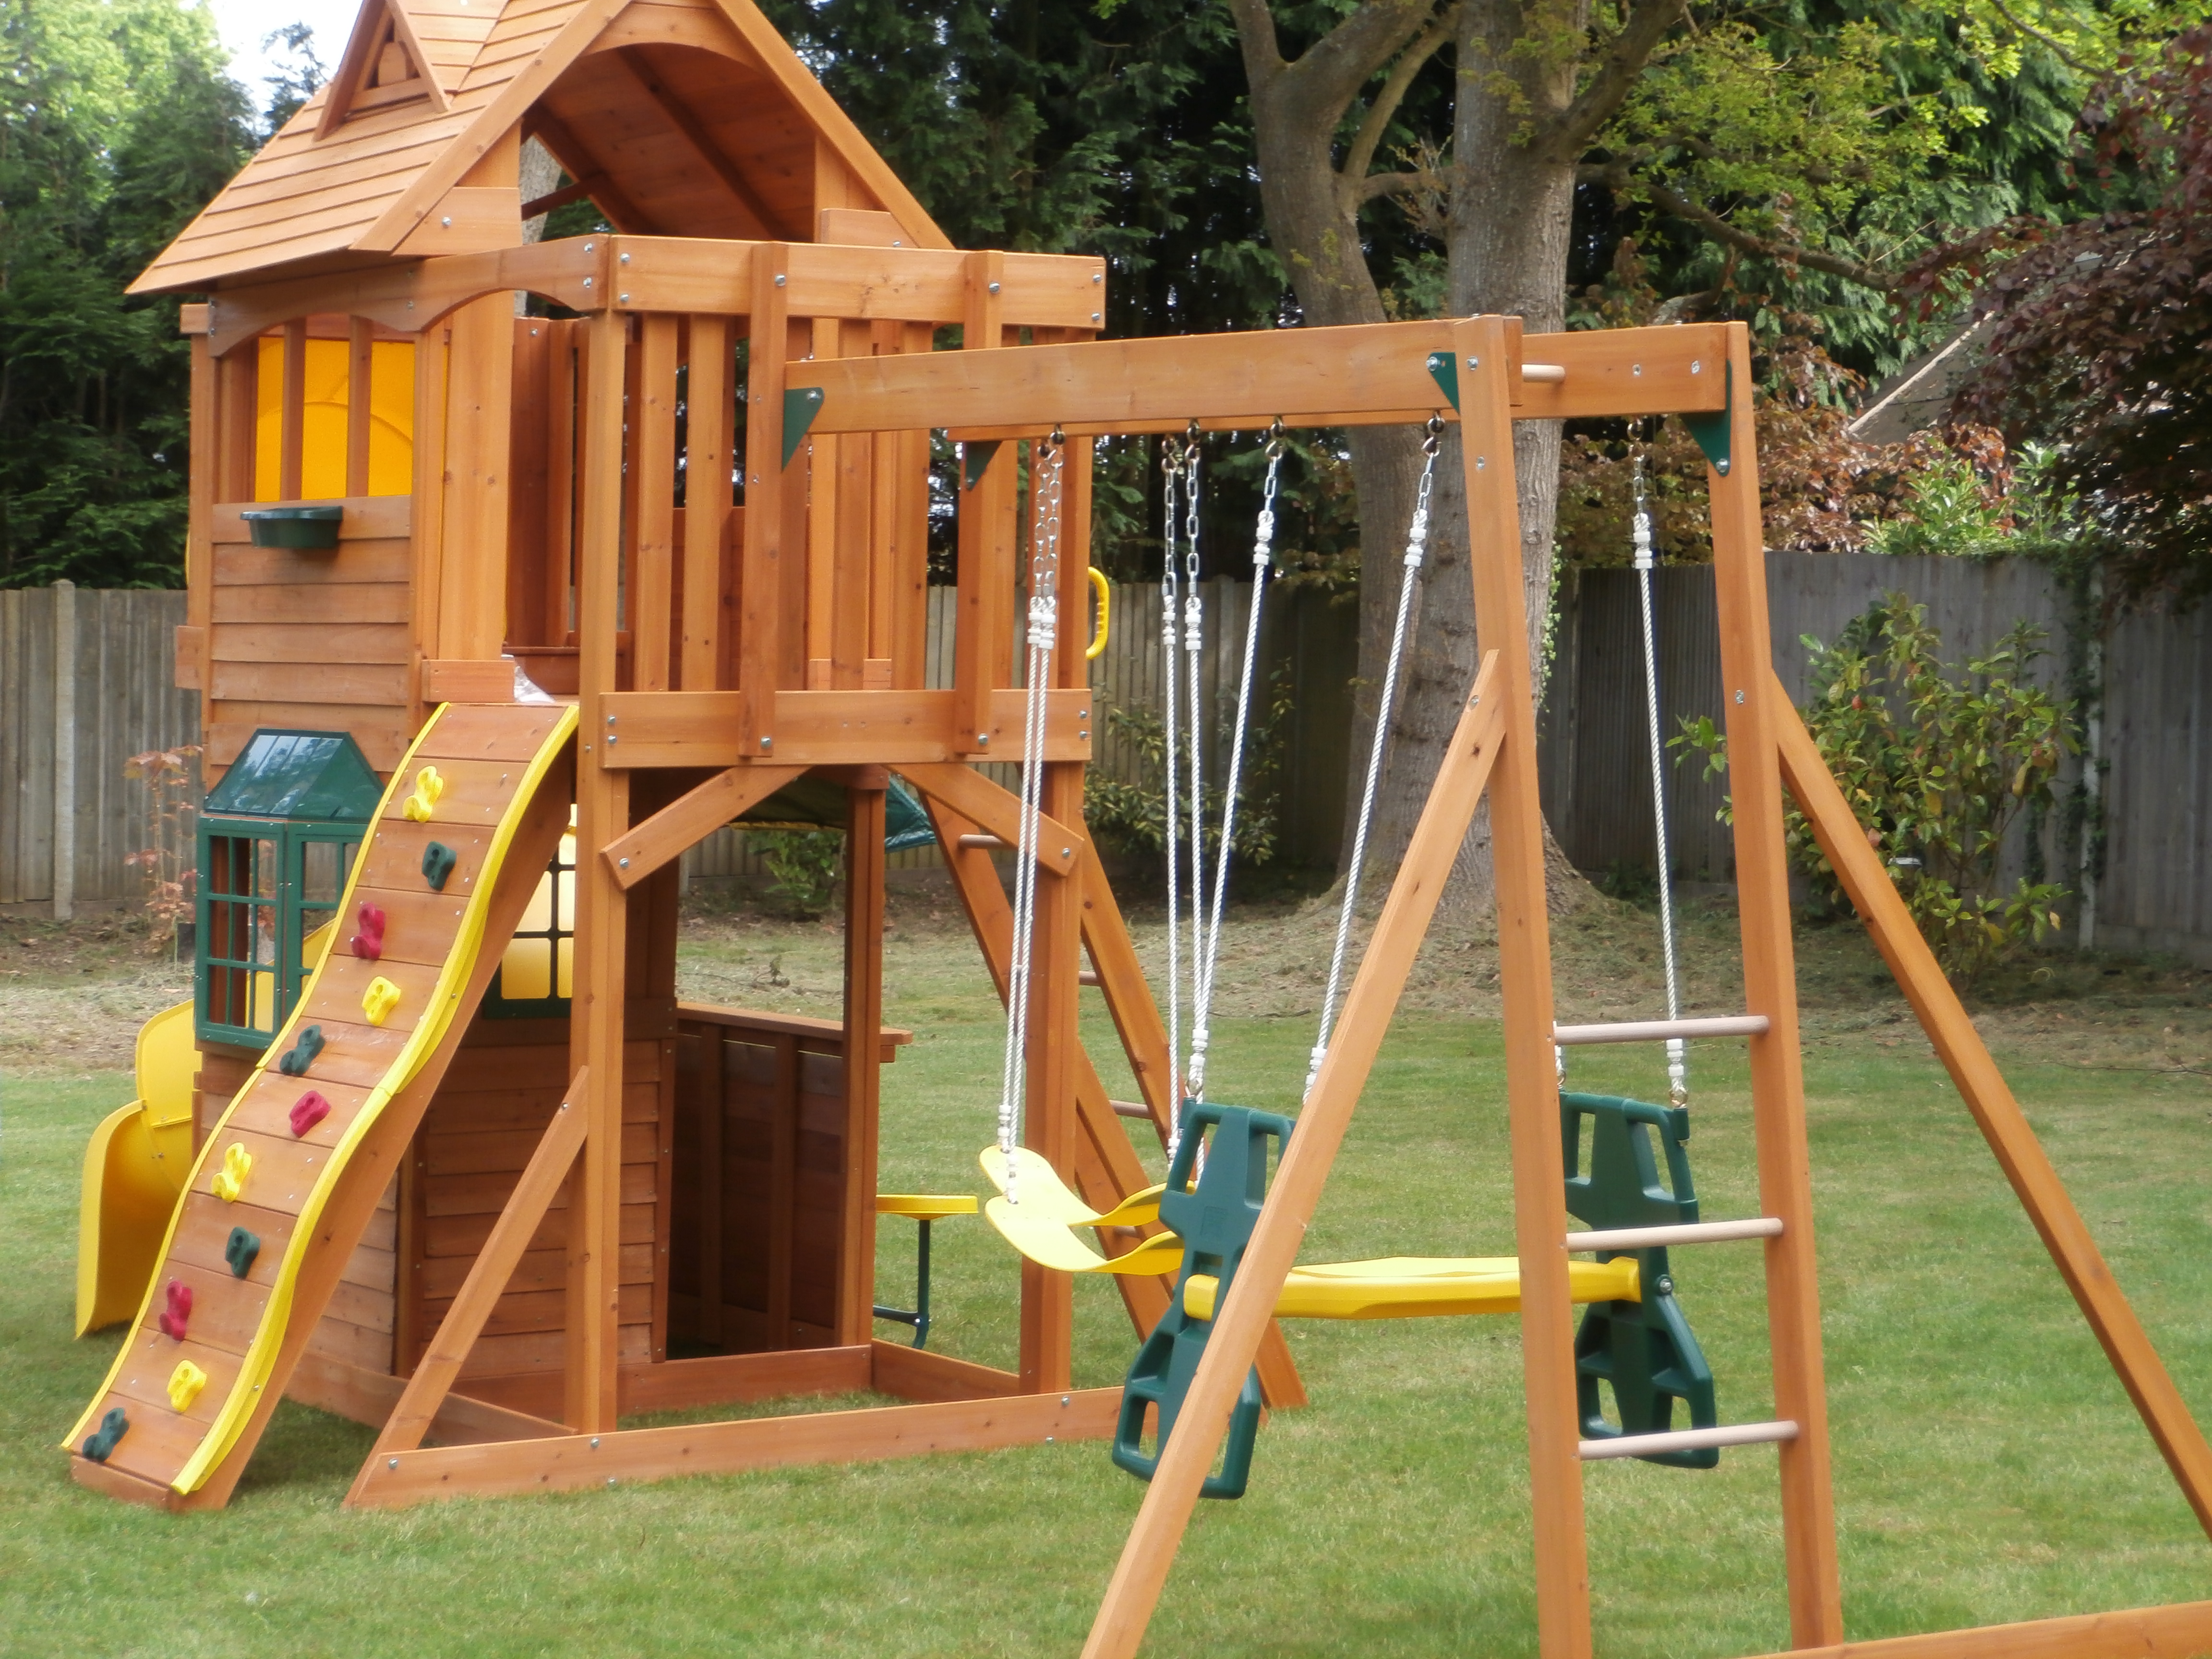 sandpoint climbing frame archives climbing frame installer. Black Bedroom Furniture Sets. Home Design Ideas